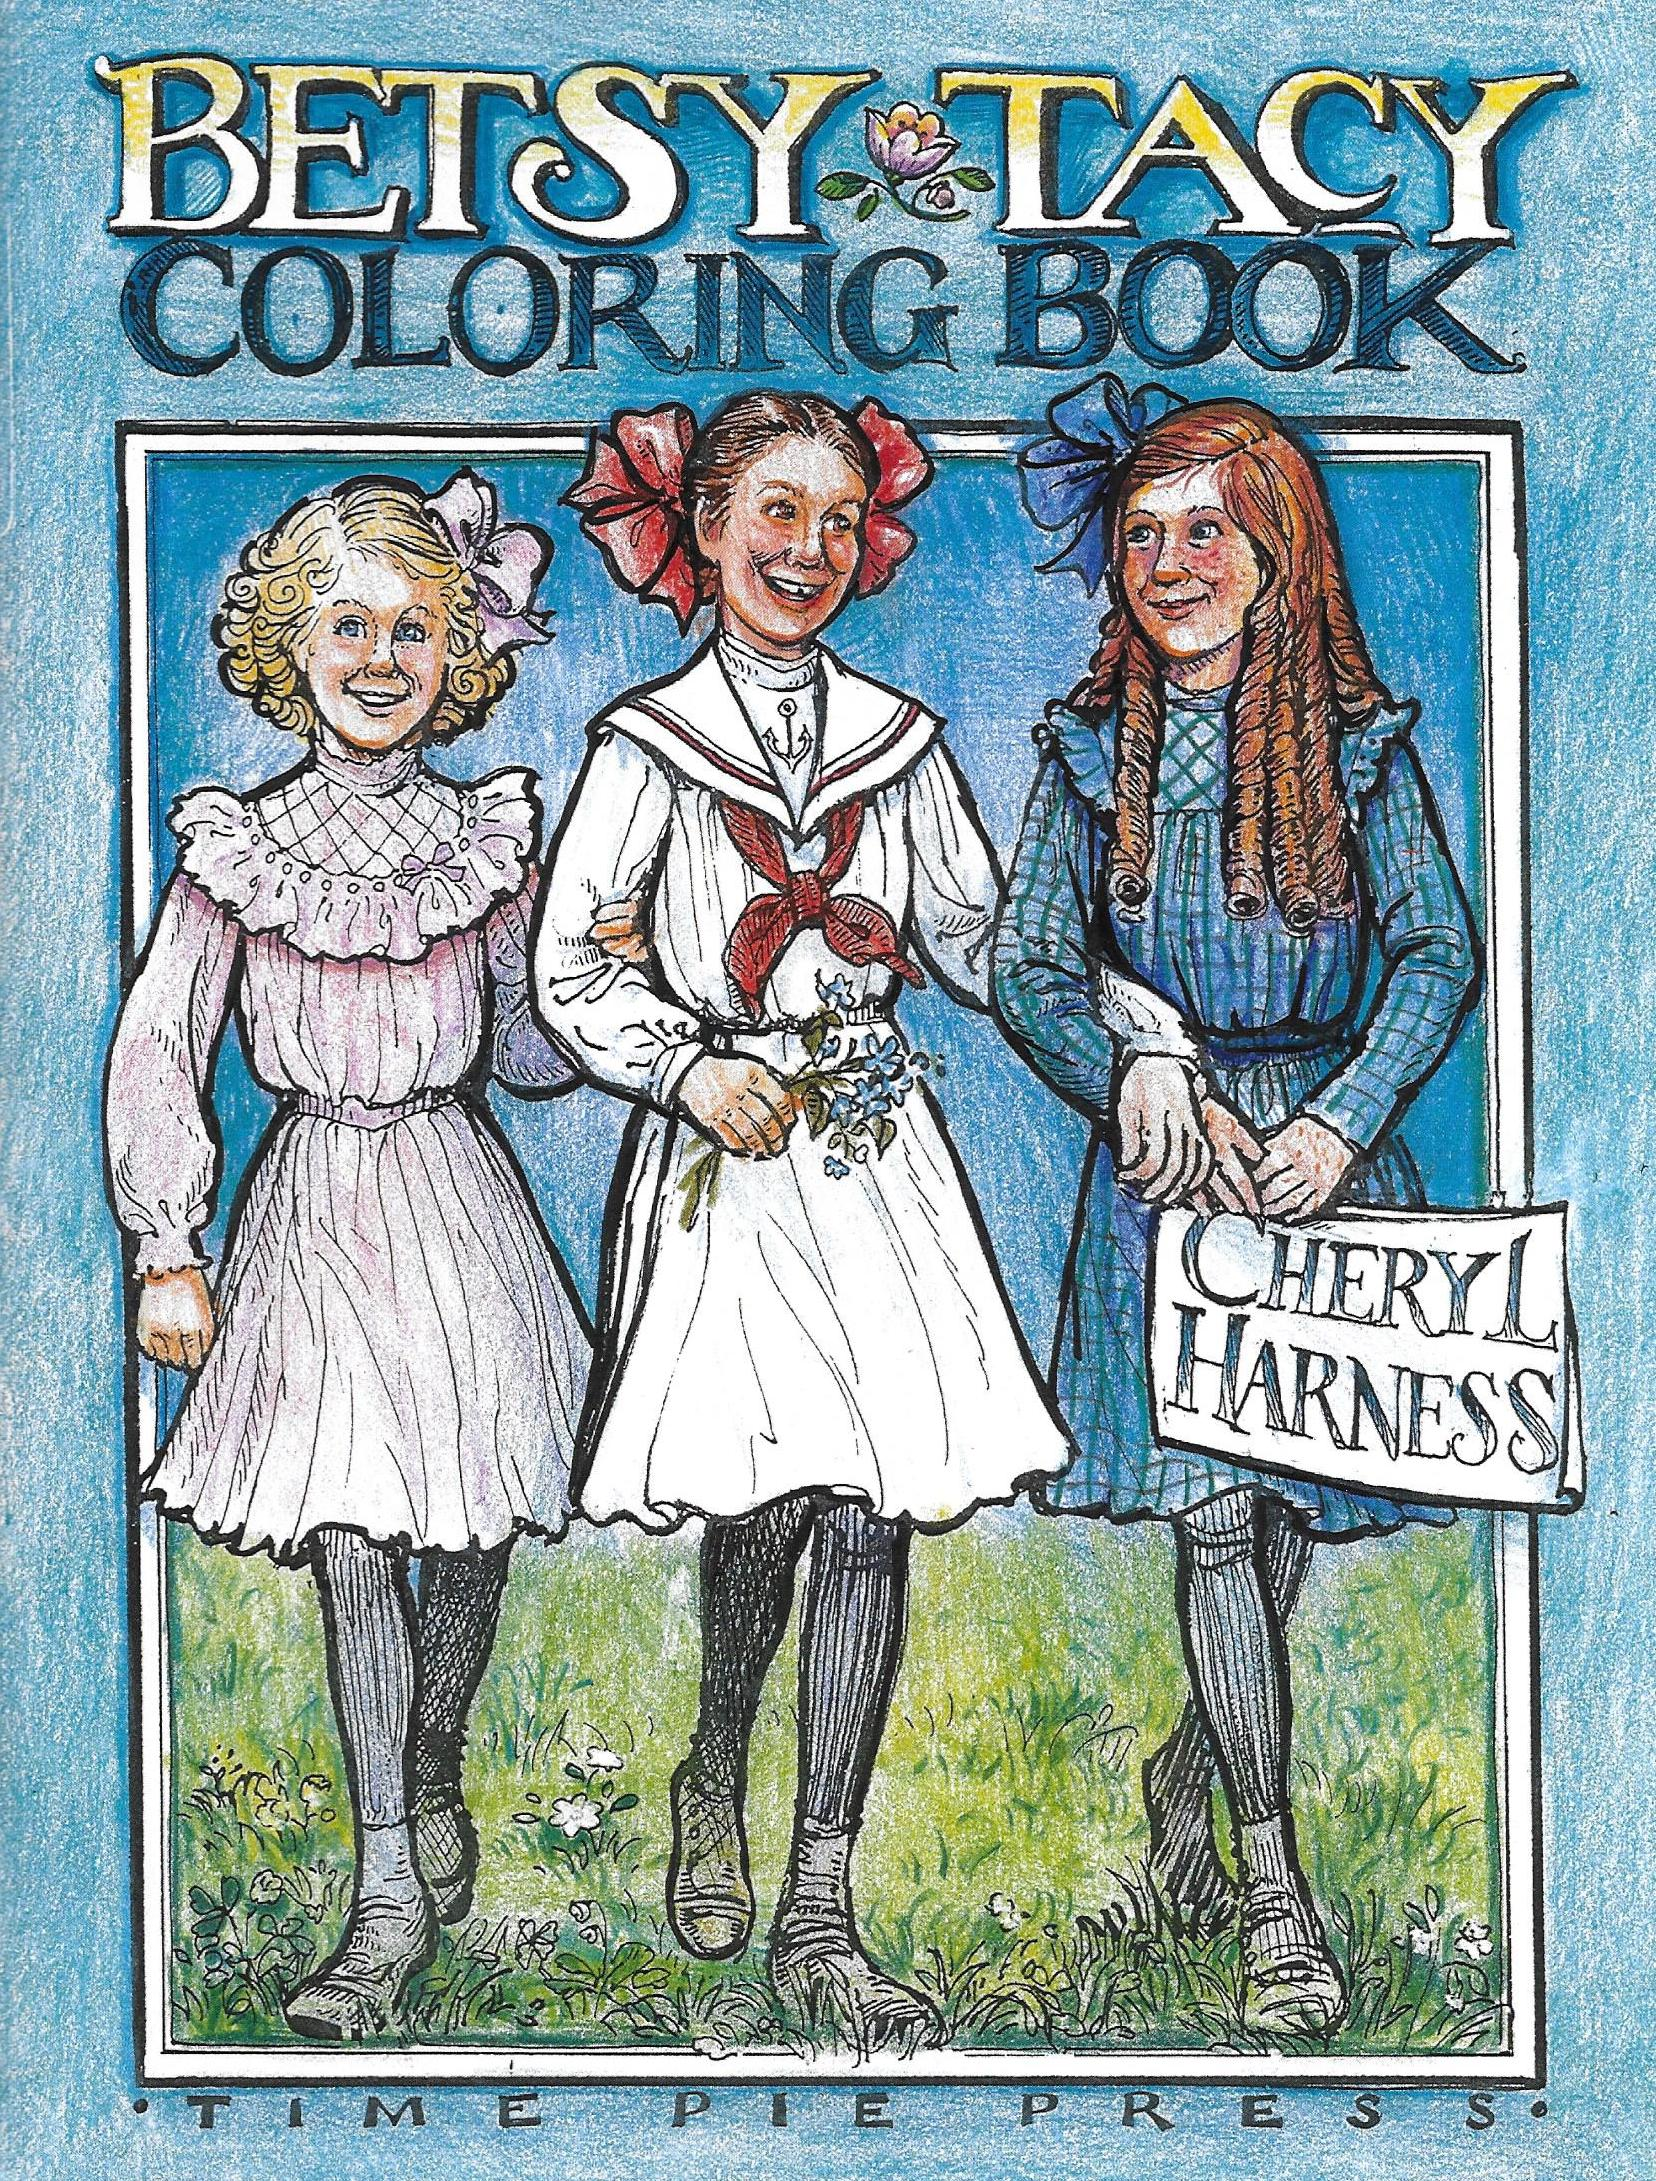 Betsy-Tacy Coloring Book